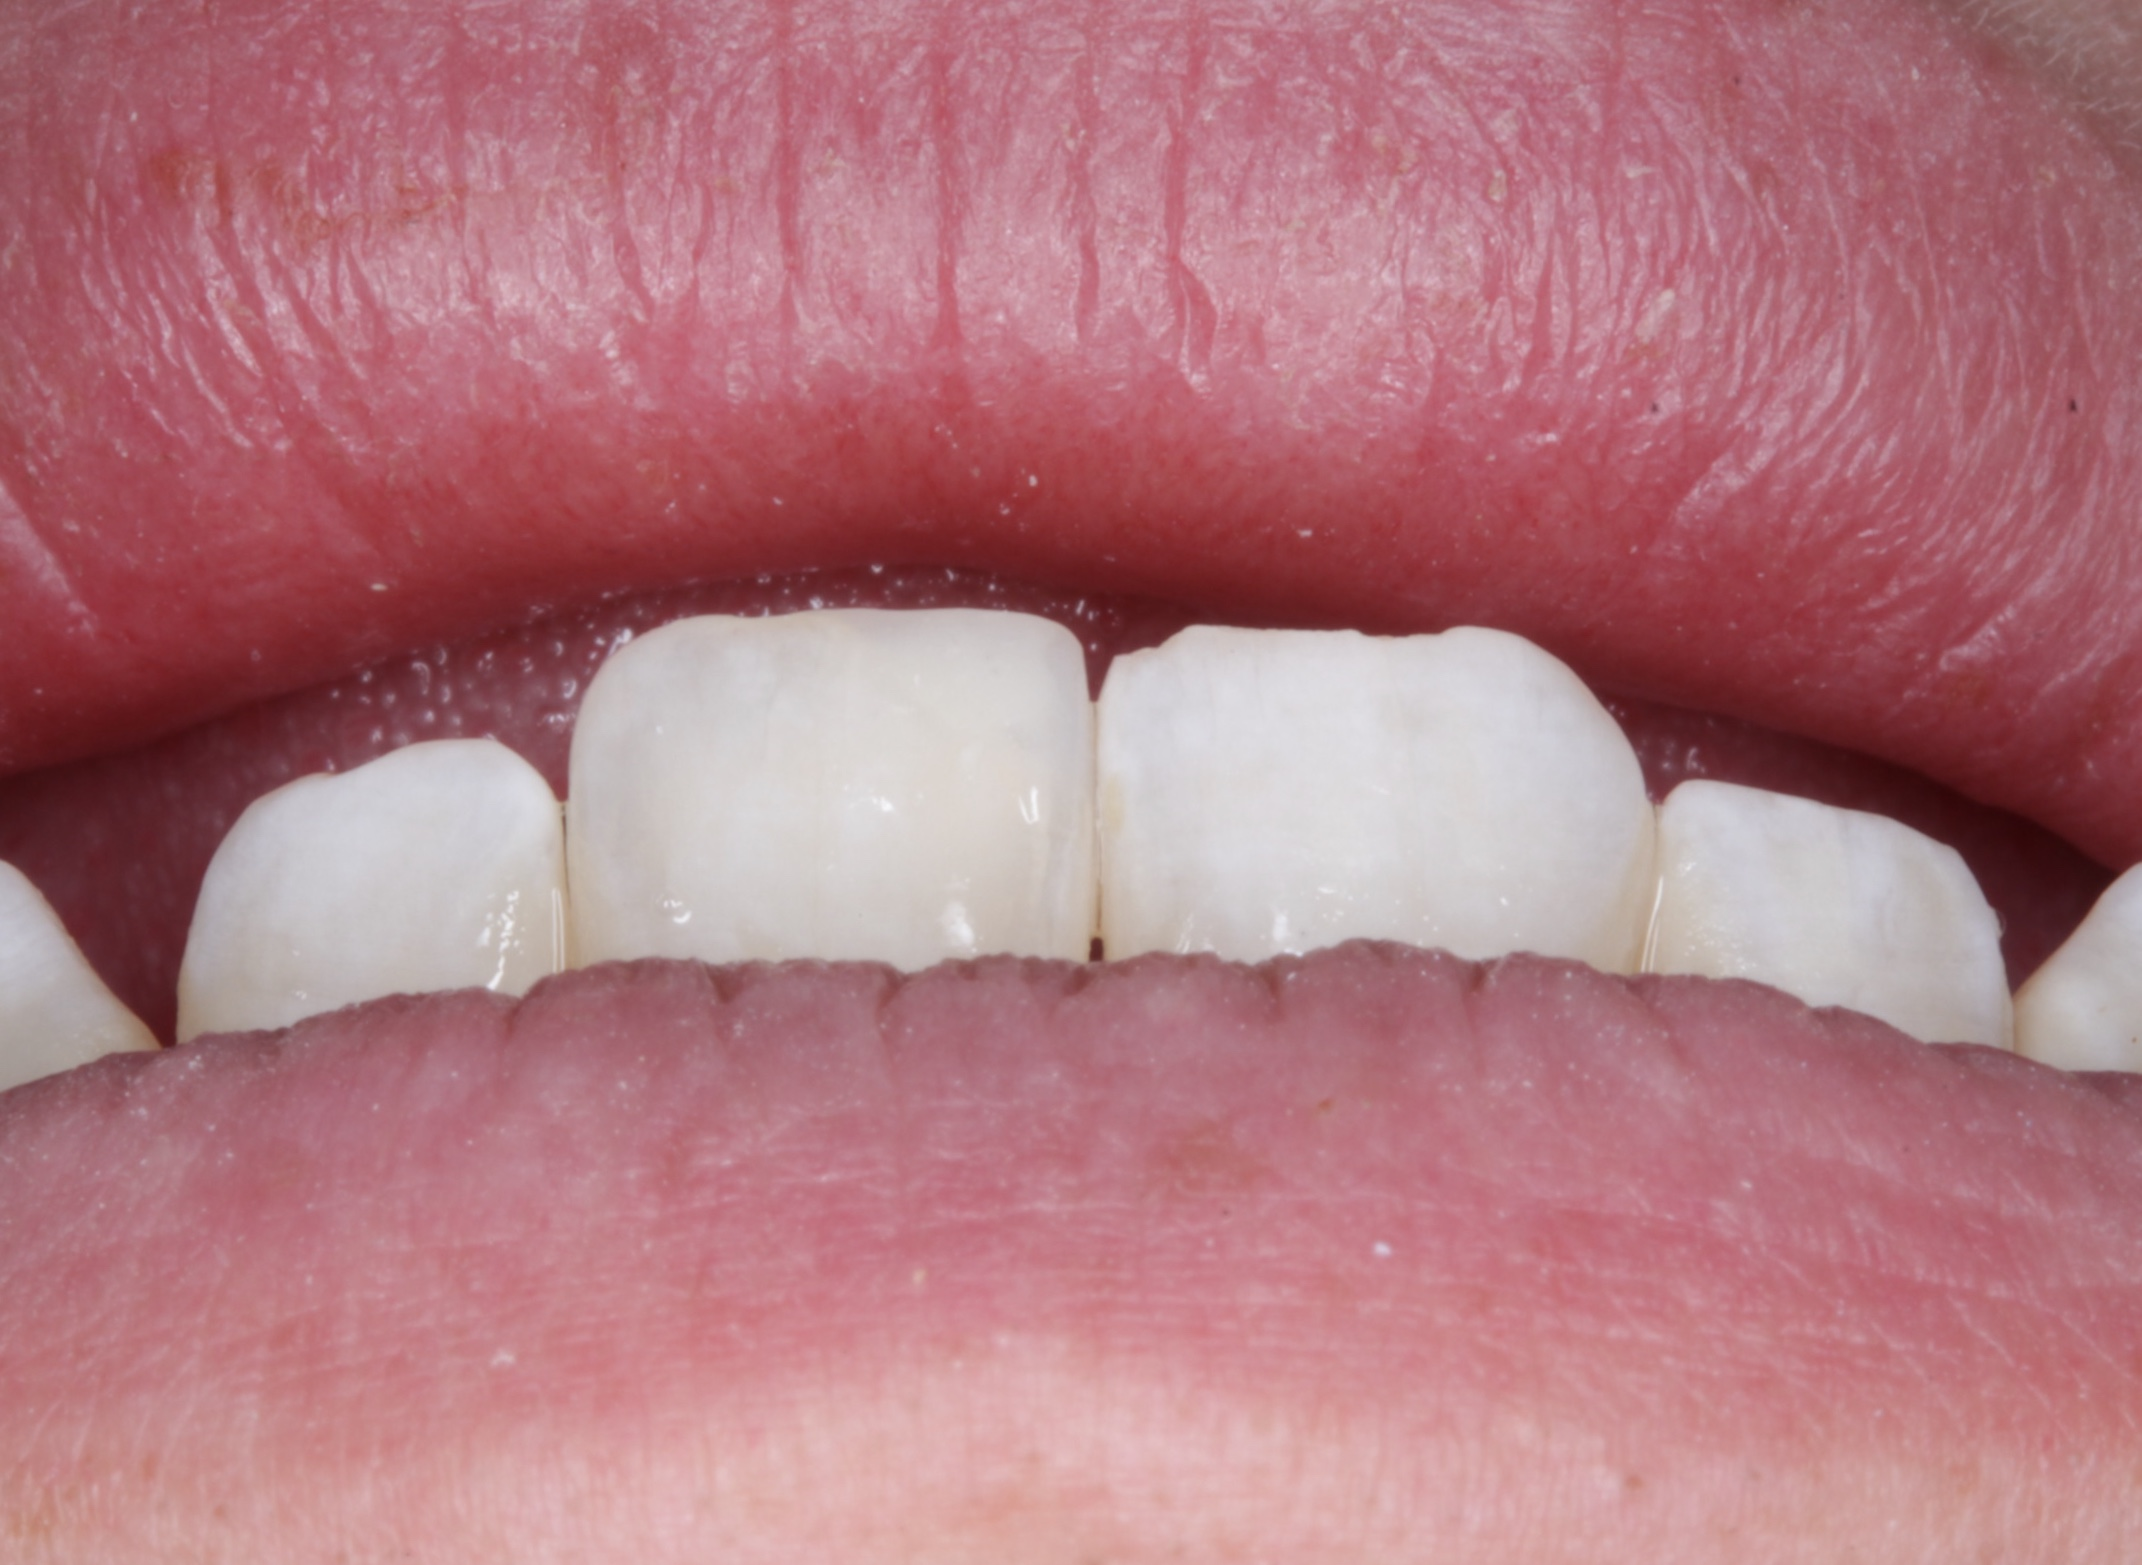 12 O'clock position - allow us to assess smile following the lower lip